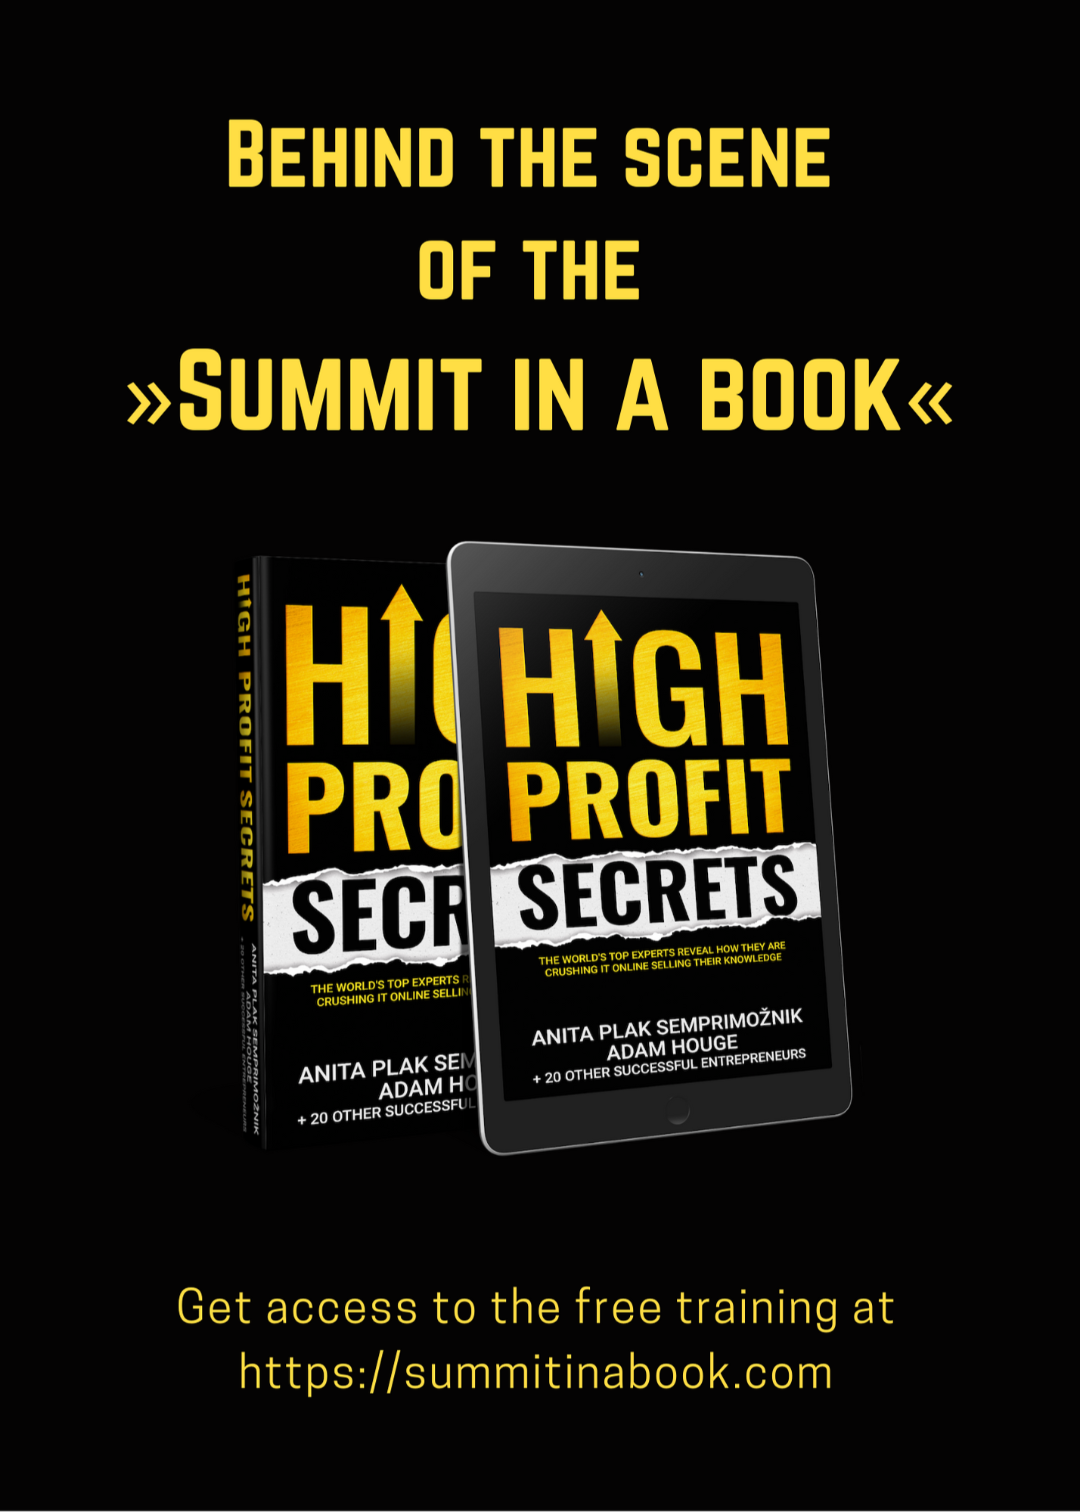 Summit in a book free training